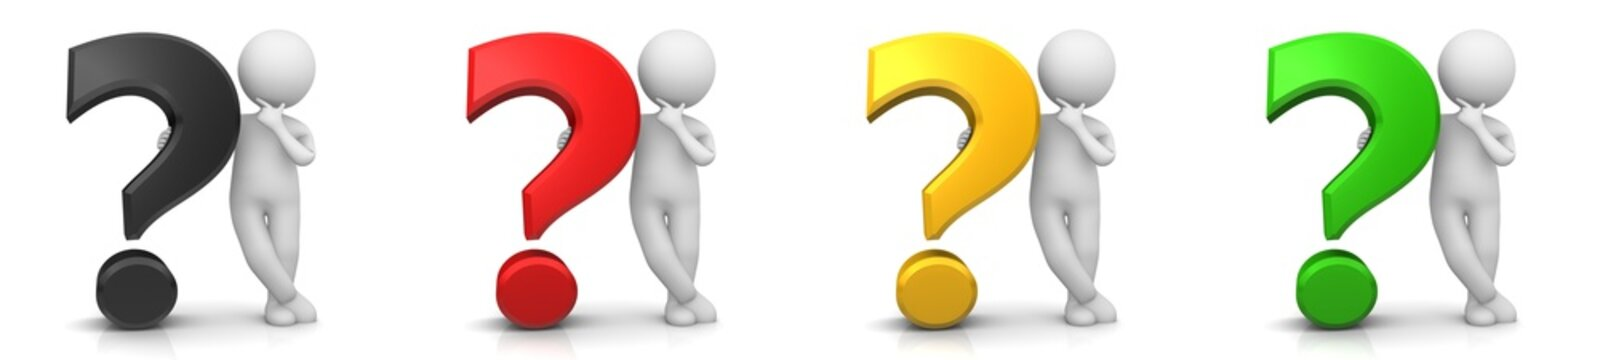 question mark 3d black red golden yellow green interrogation point queries standing thinking asking stick man person sign multi colored symbols icon set isolated on white background